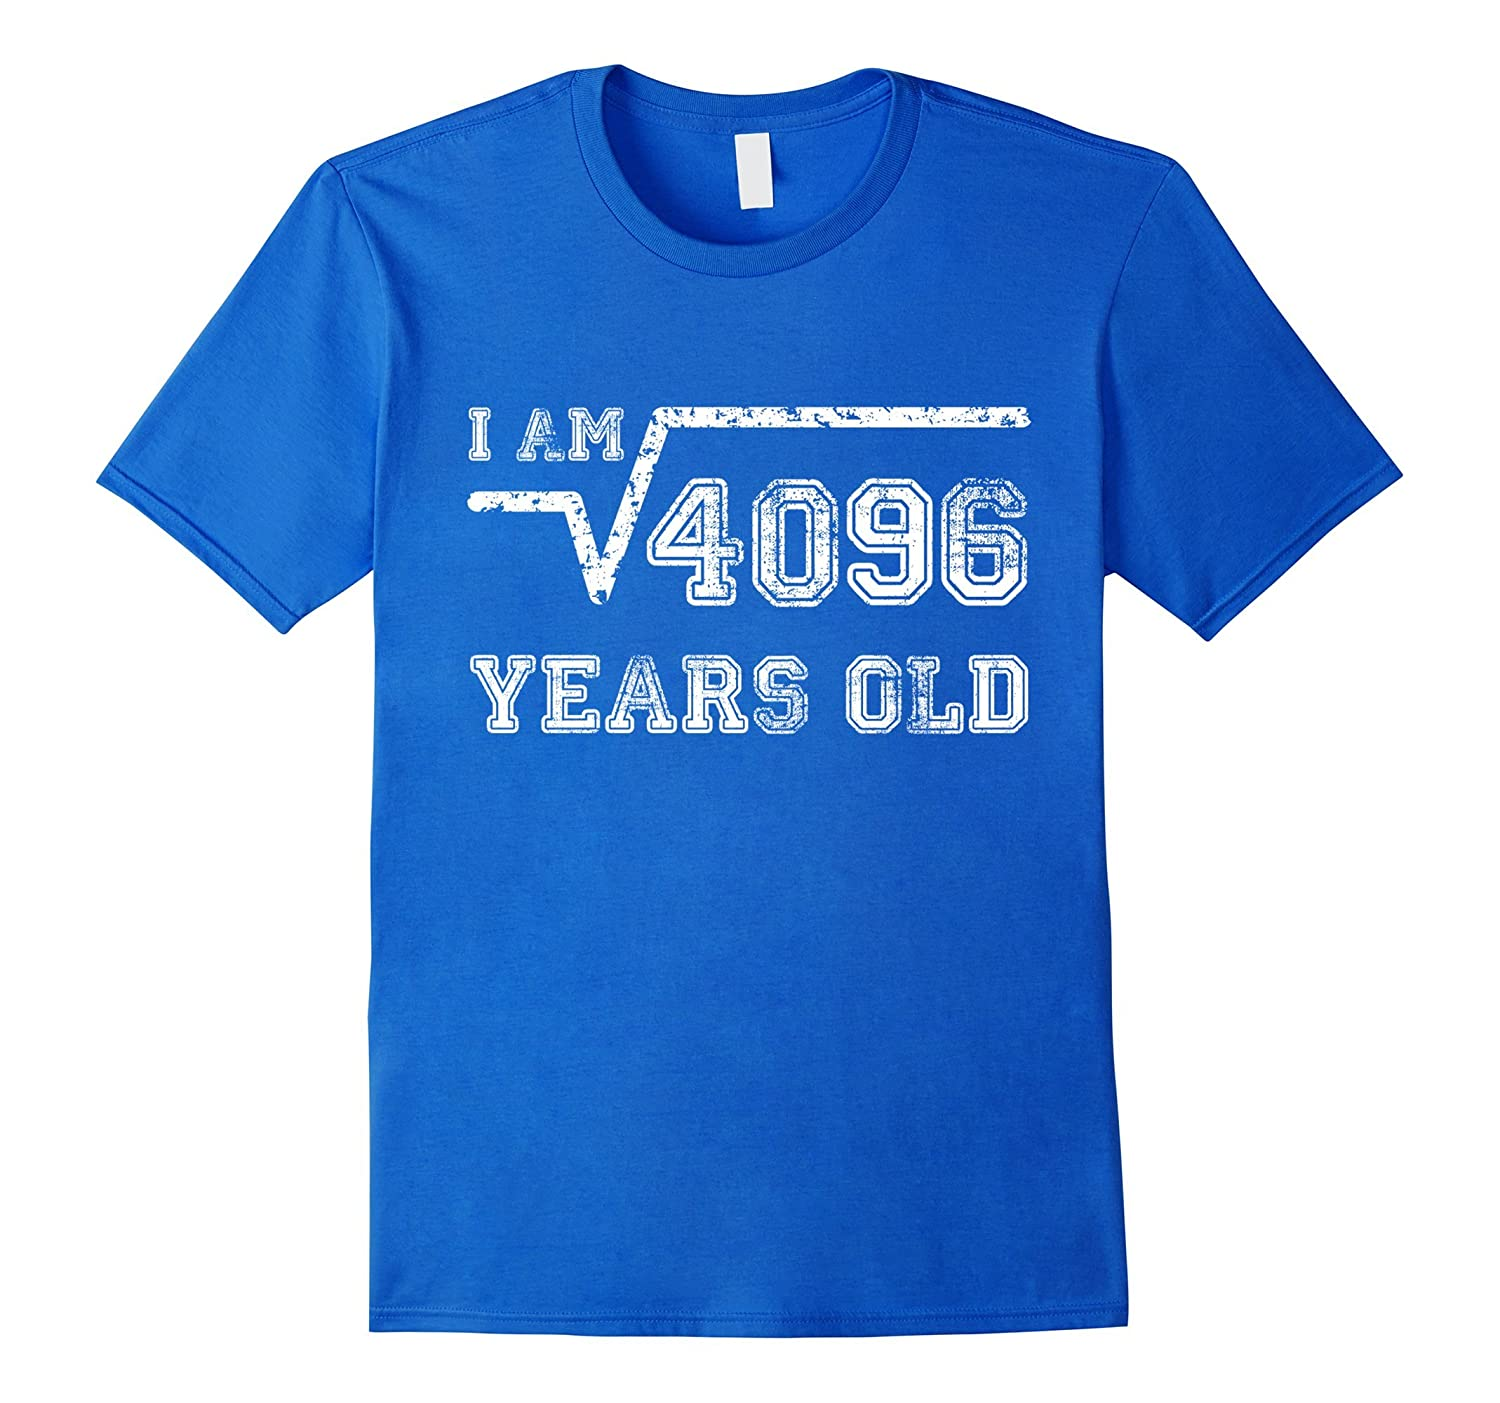 Square Root of 4096 Years Old Tshirt 64th Birthday Gift-PL